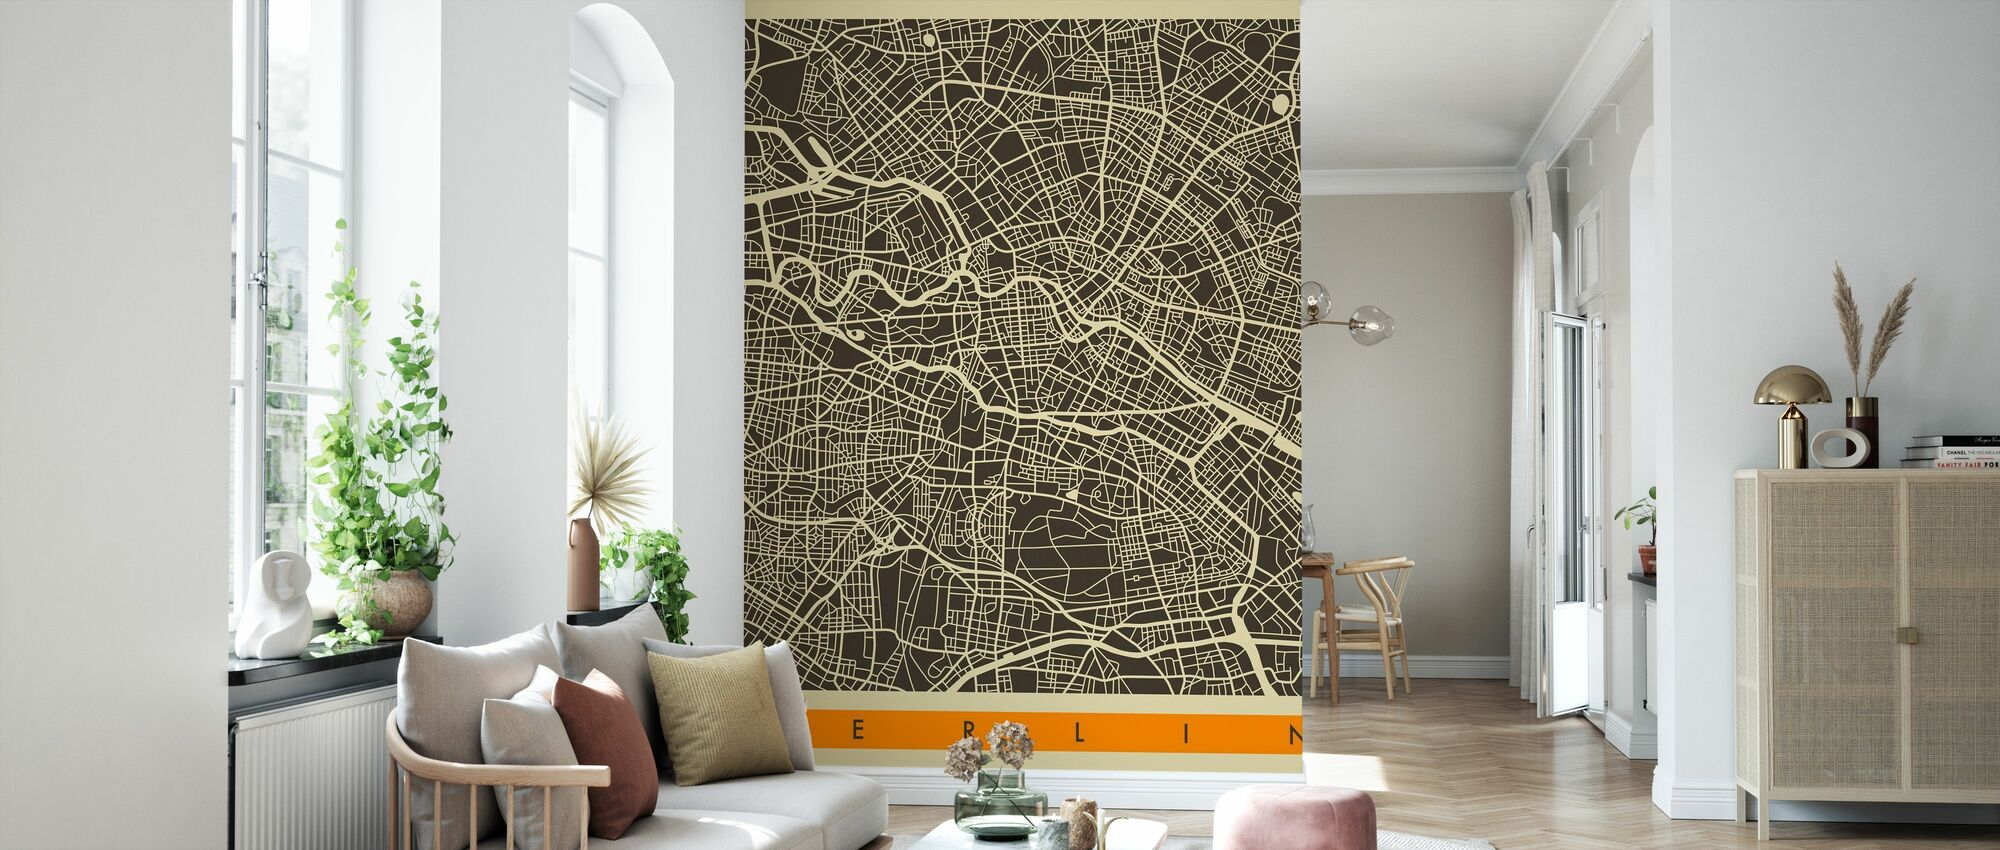 City Map - Berlin - Wallpaper - Living Room